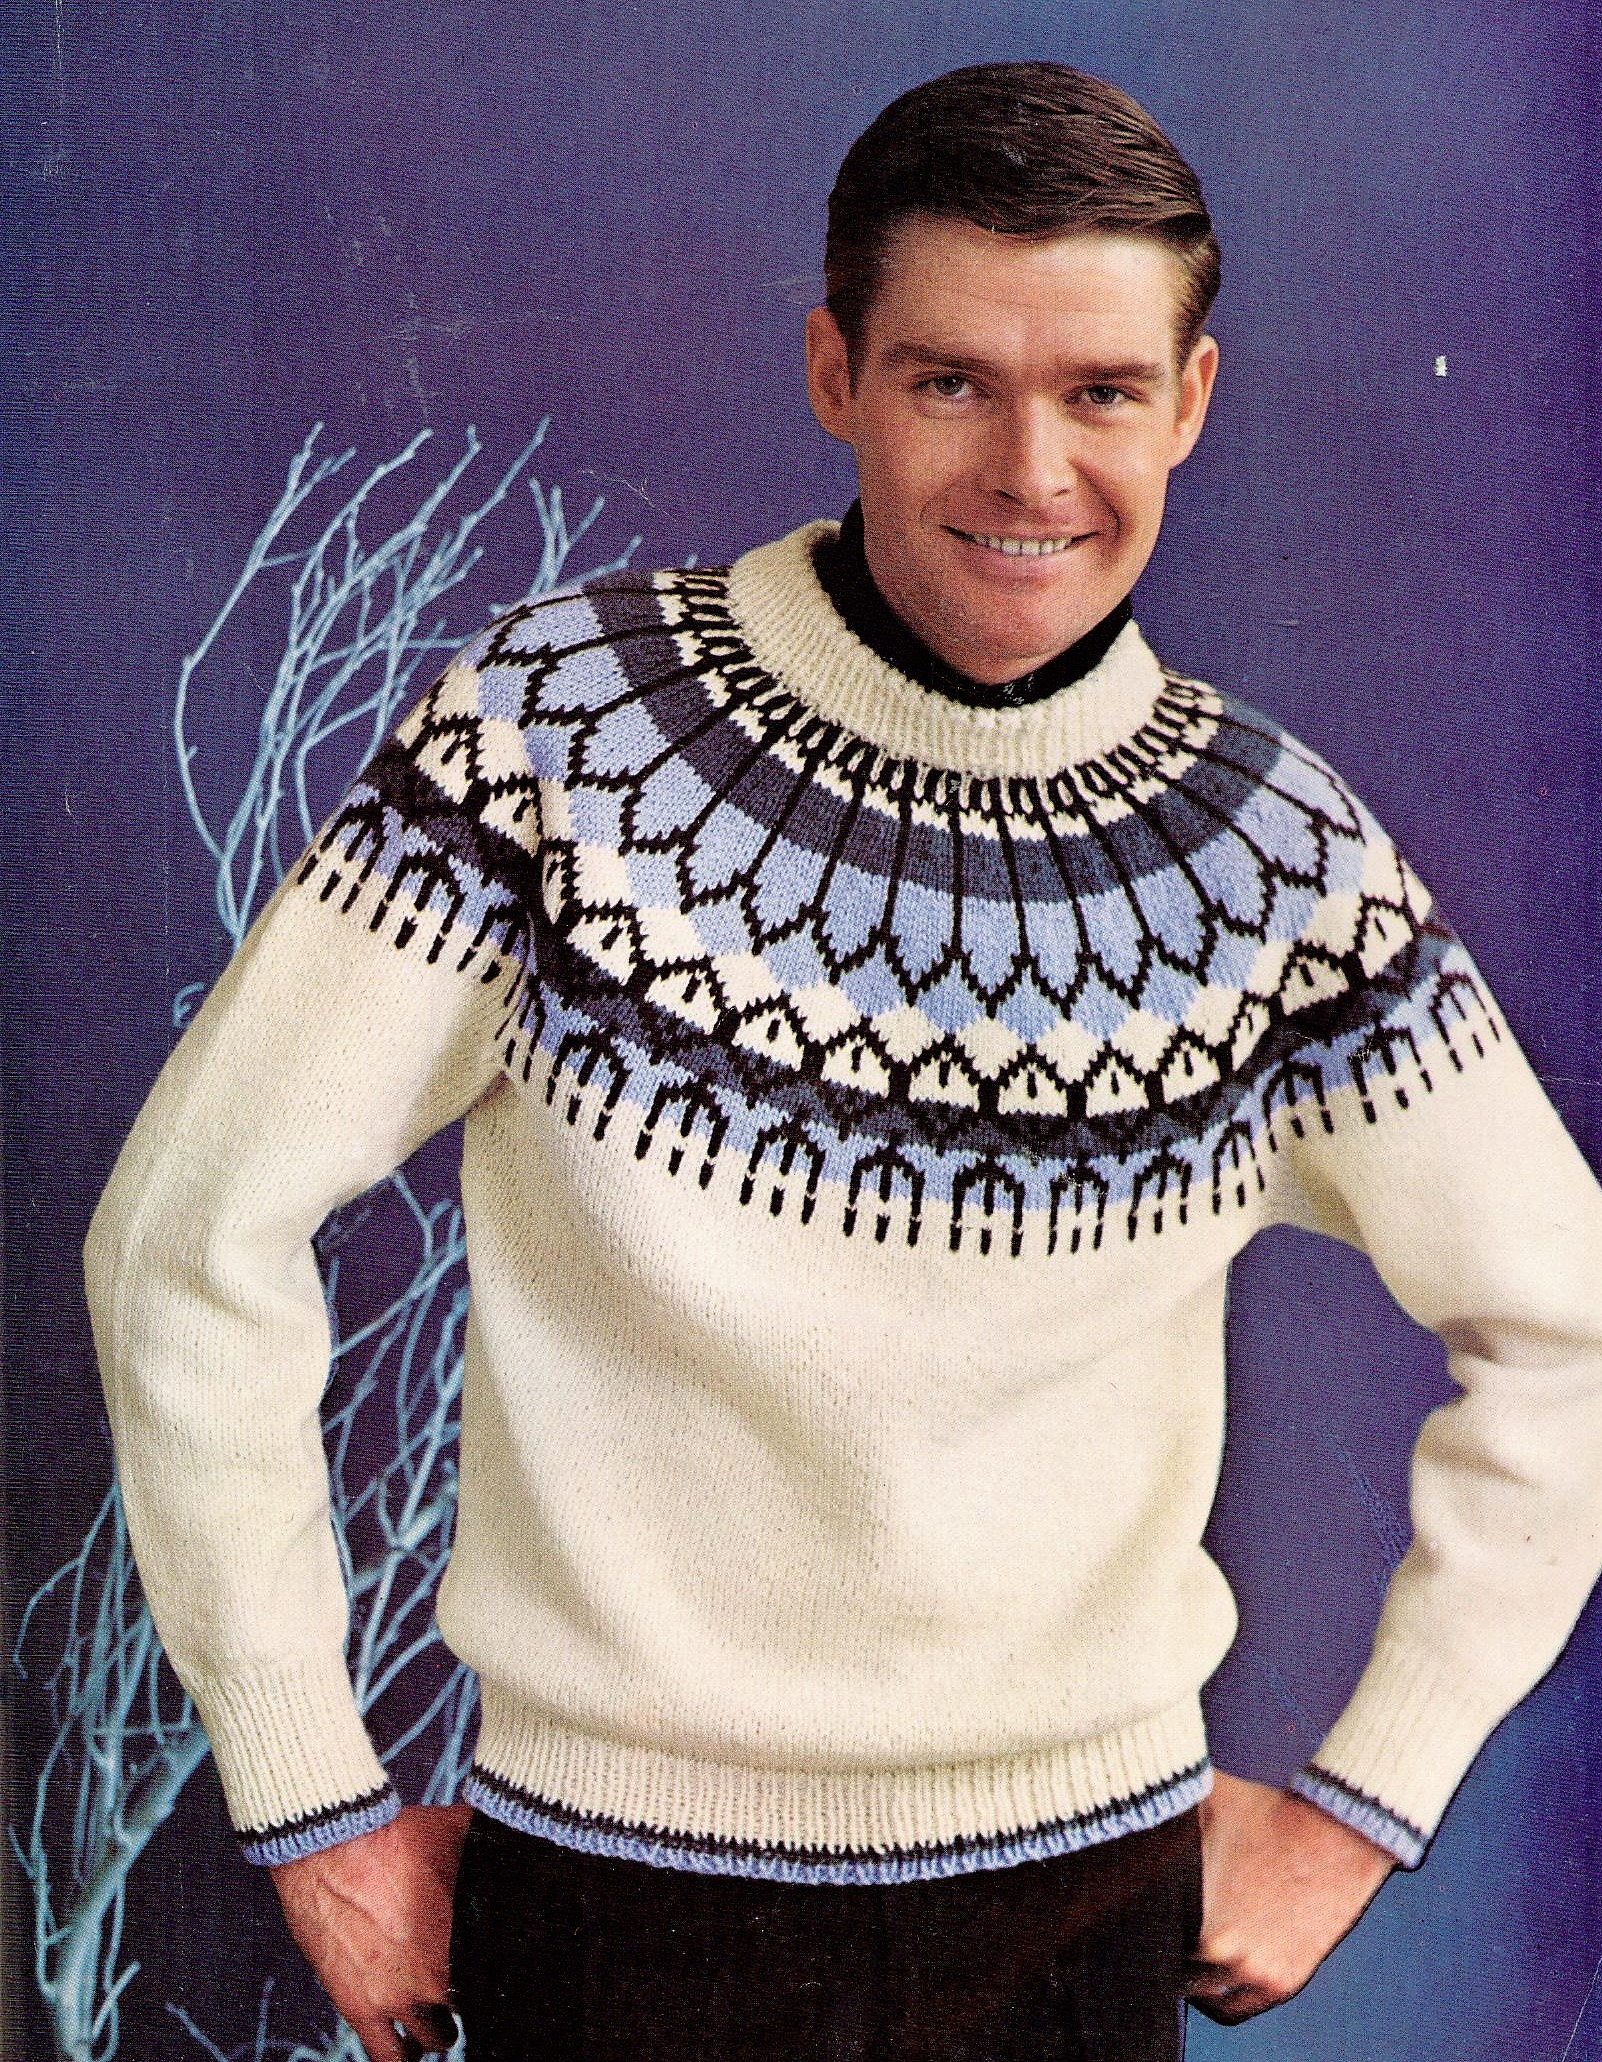 c3dd15472 This is a classic knitting pattern from 1967 for a men s yoke-design  pullover in knitting worsted. Body is knit on a circular needle